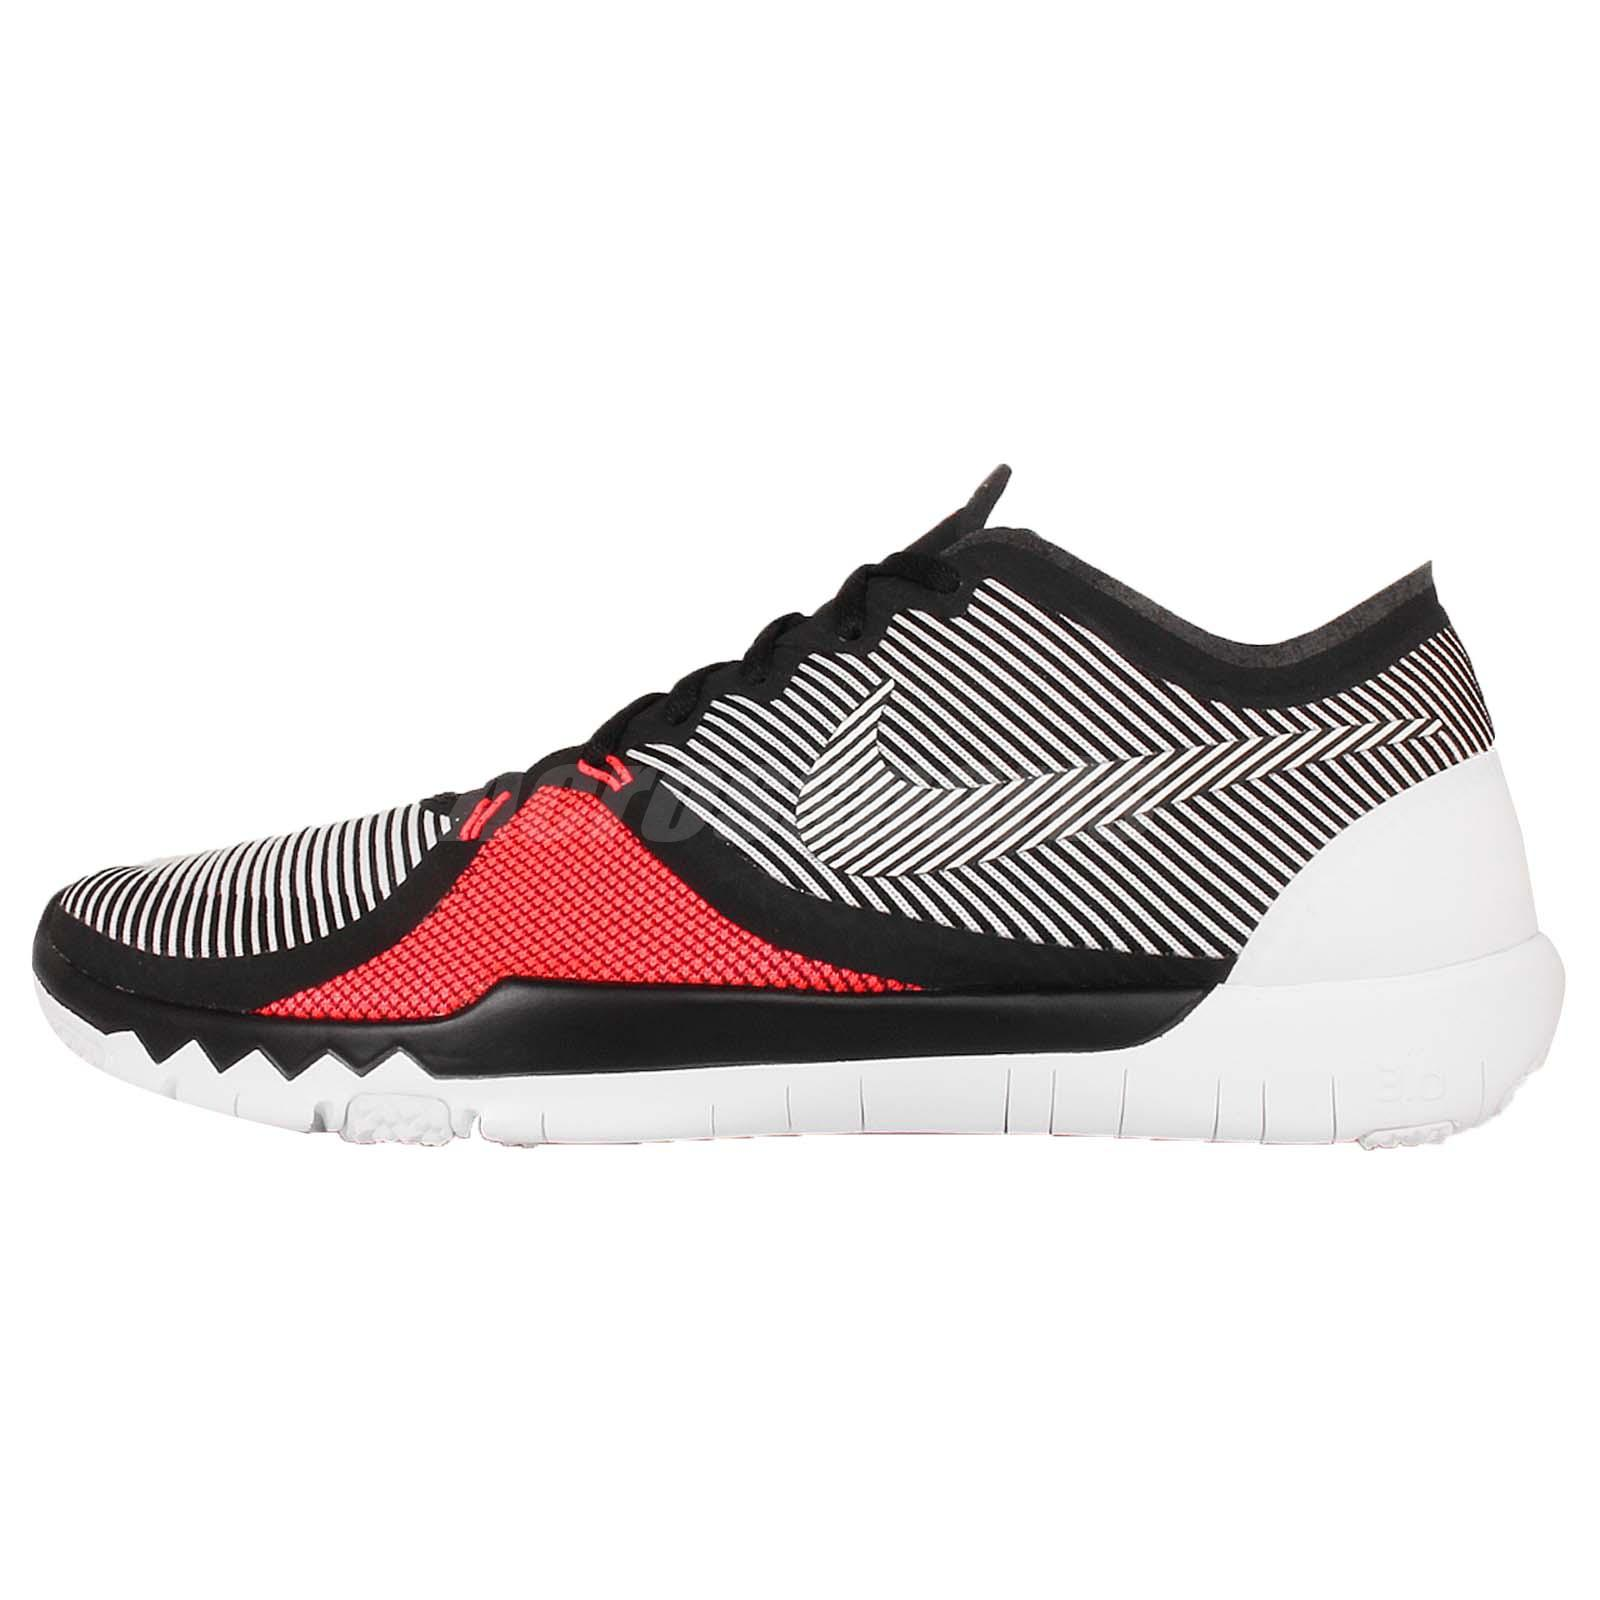 official photos bbb8a 76b0f Nike Free Men s Athletic Shoes   eBay